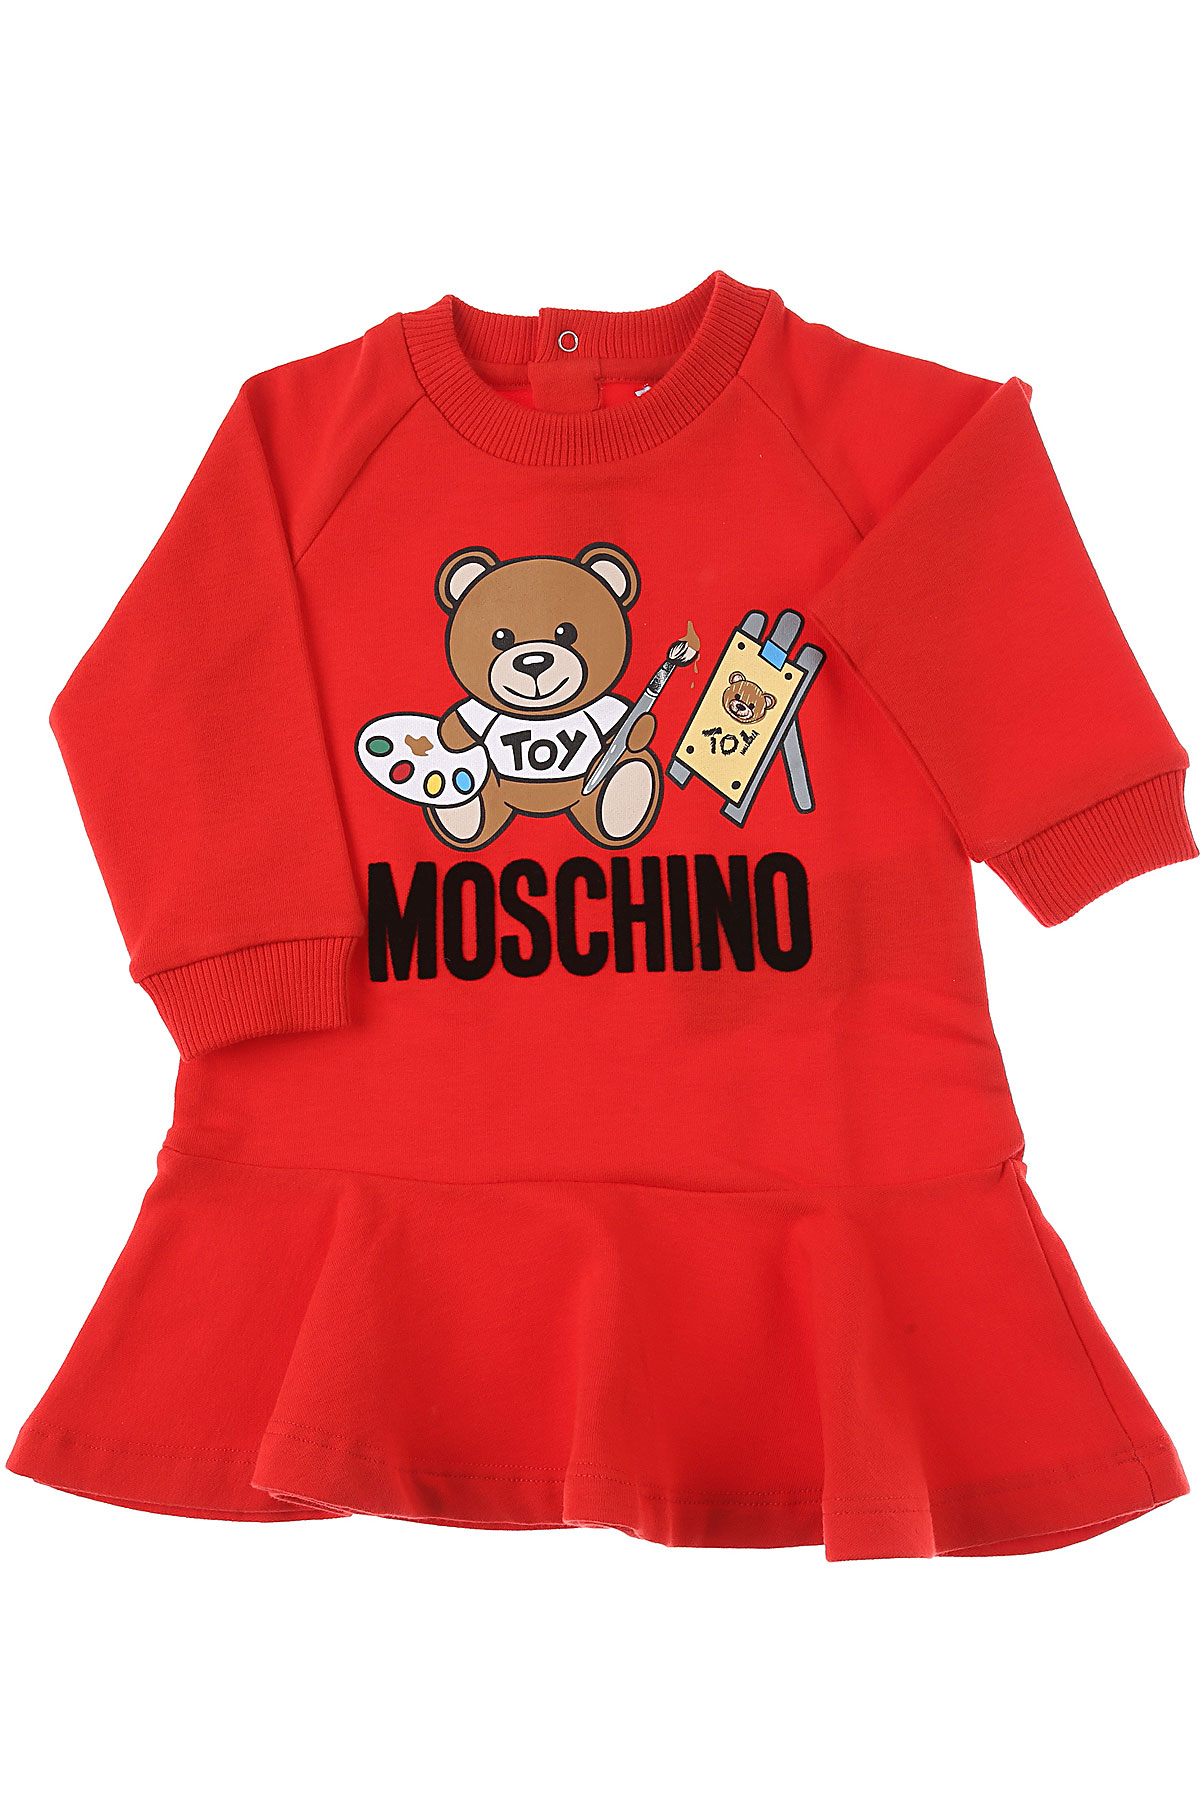 Moschino Baby Dress for Girls On Sale, Red, Cotton, 2019, 12M 18M 3Y 9M